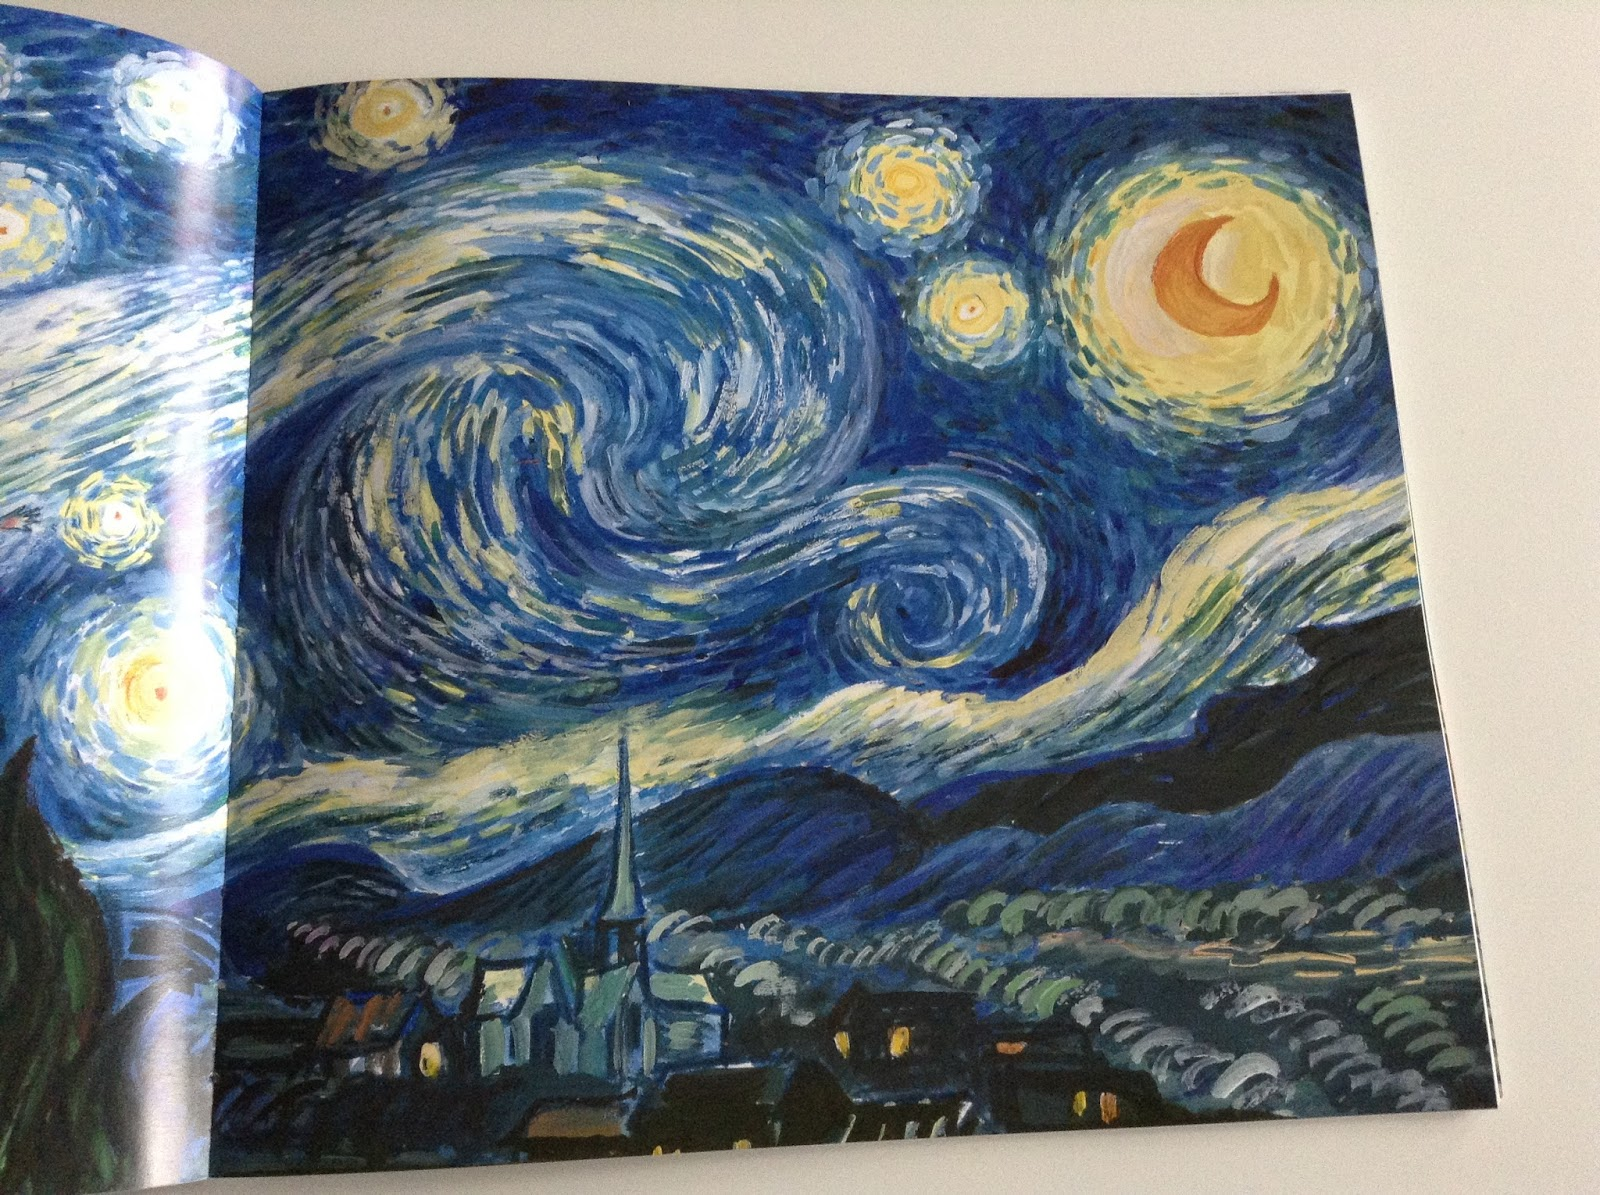 distinctively visual maestro and starry night This super simple activity gives kids a hands-on and concrete way to understand how planets orbit the sun in a large circle.